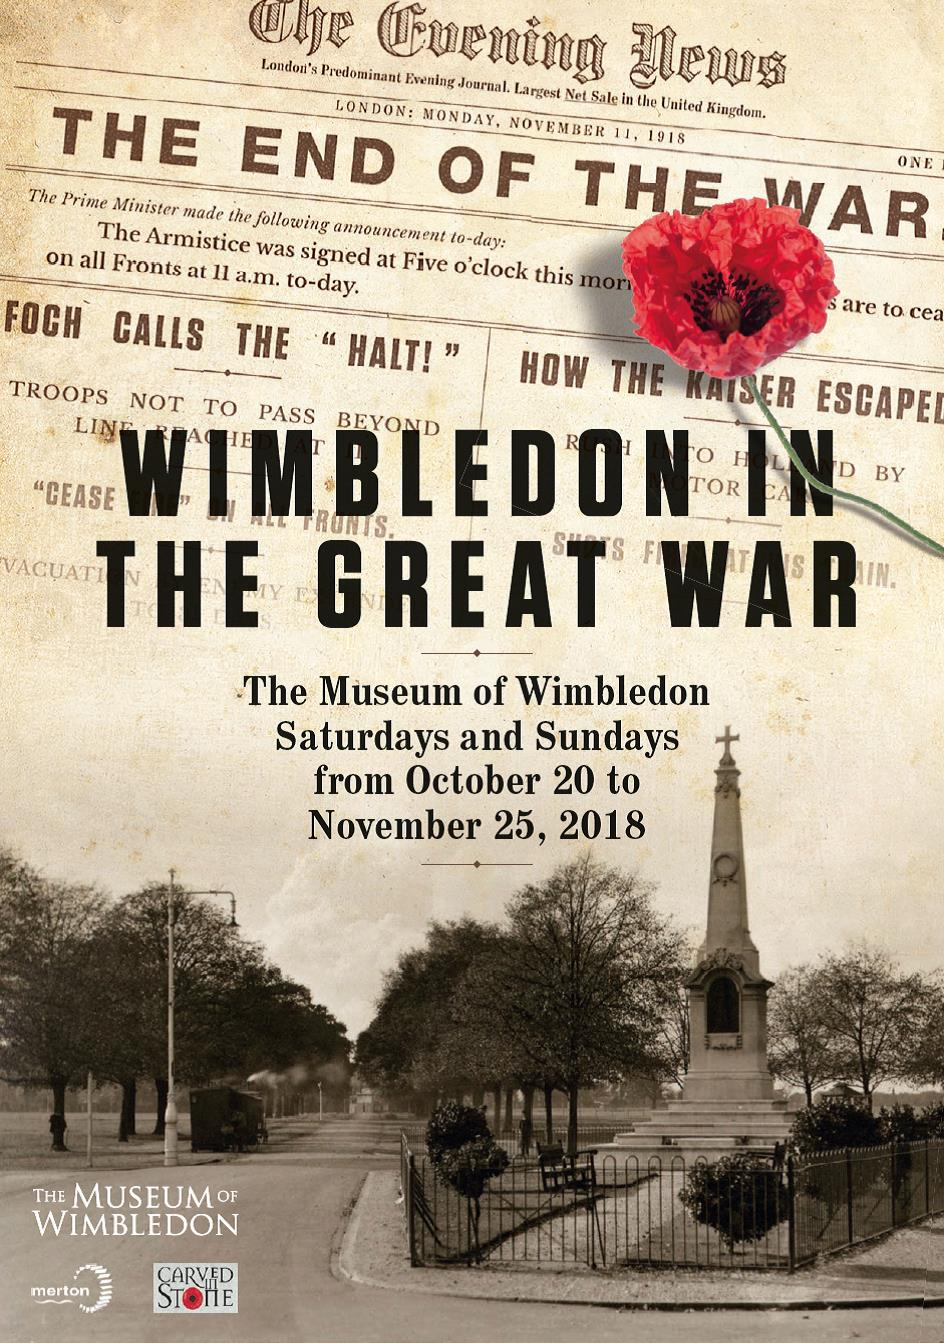 Wimbledon in the Great War